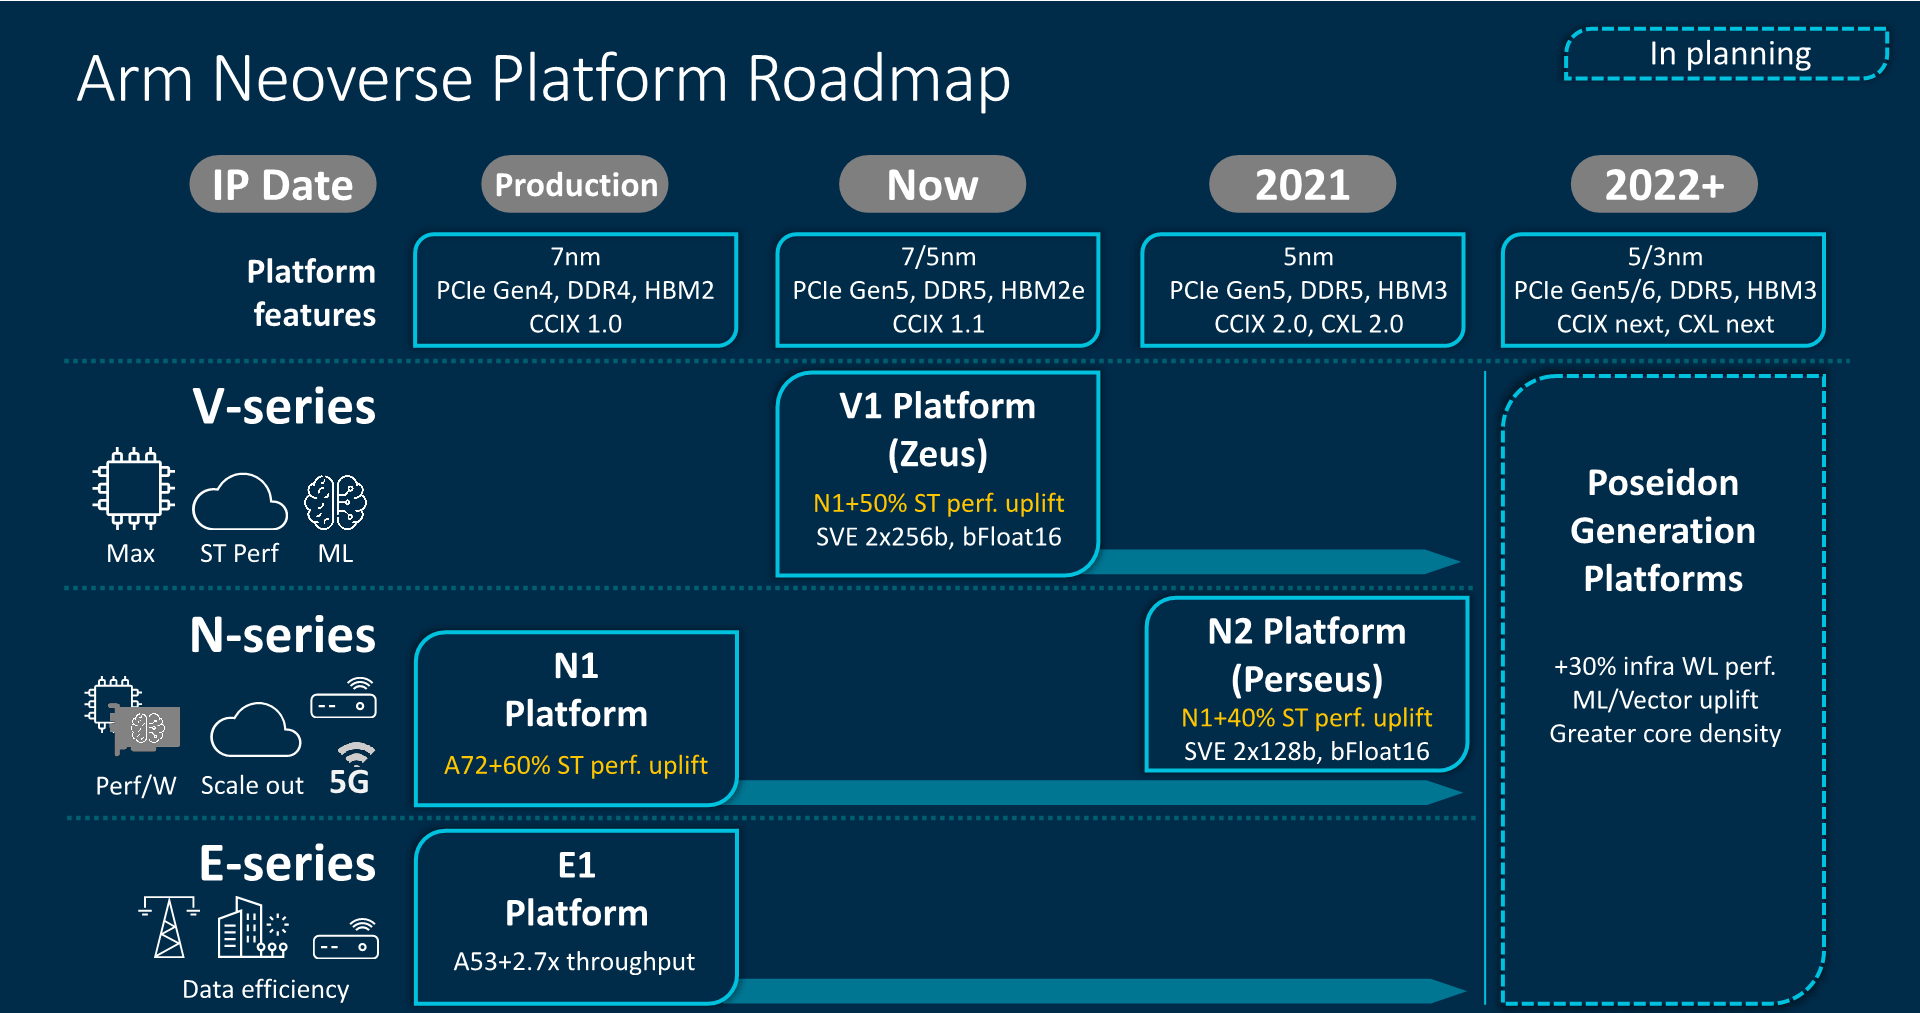 A roadmap diagram showing the past, present, and future intentions for the Neoverse platform.